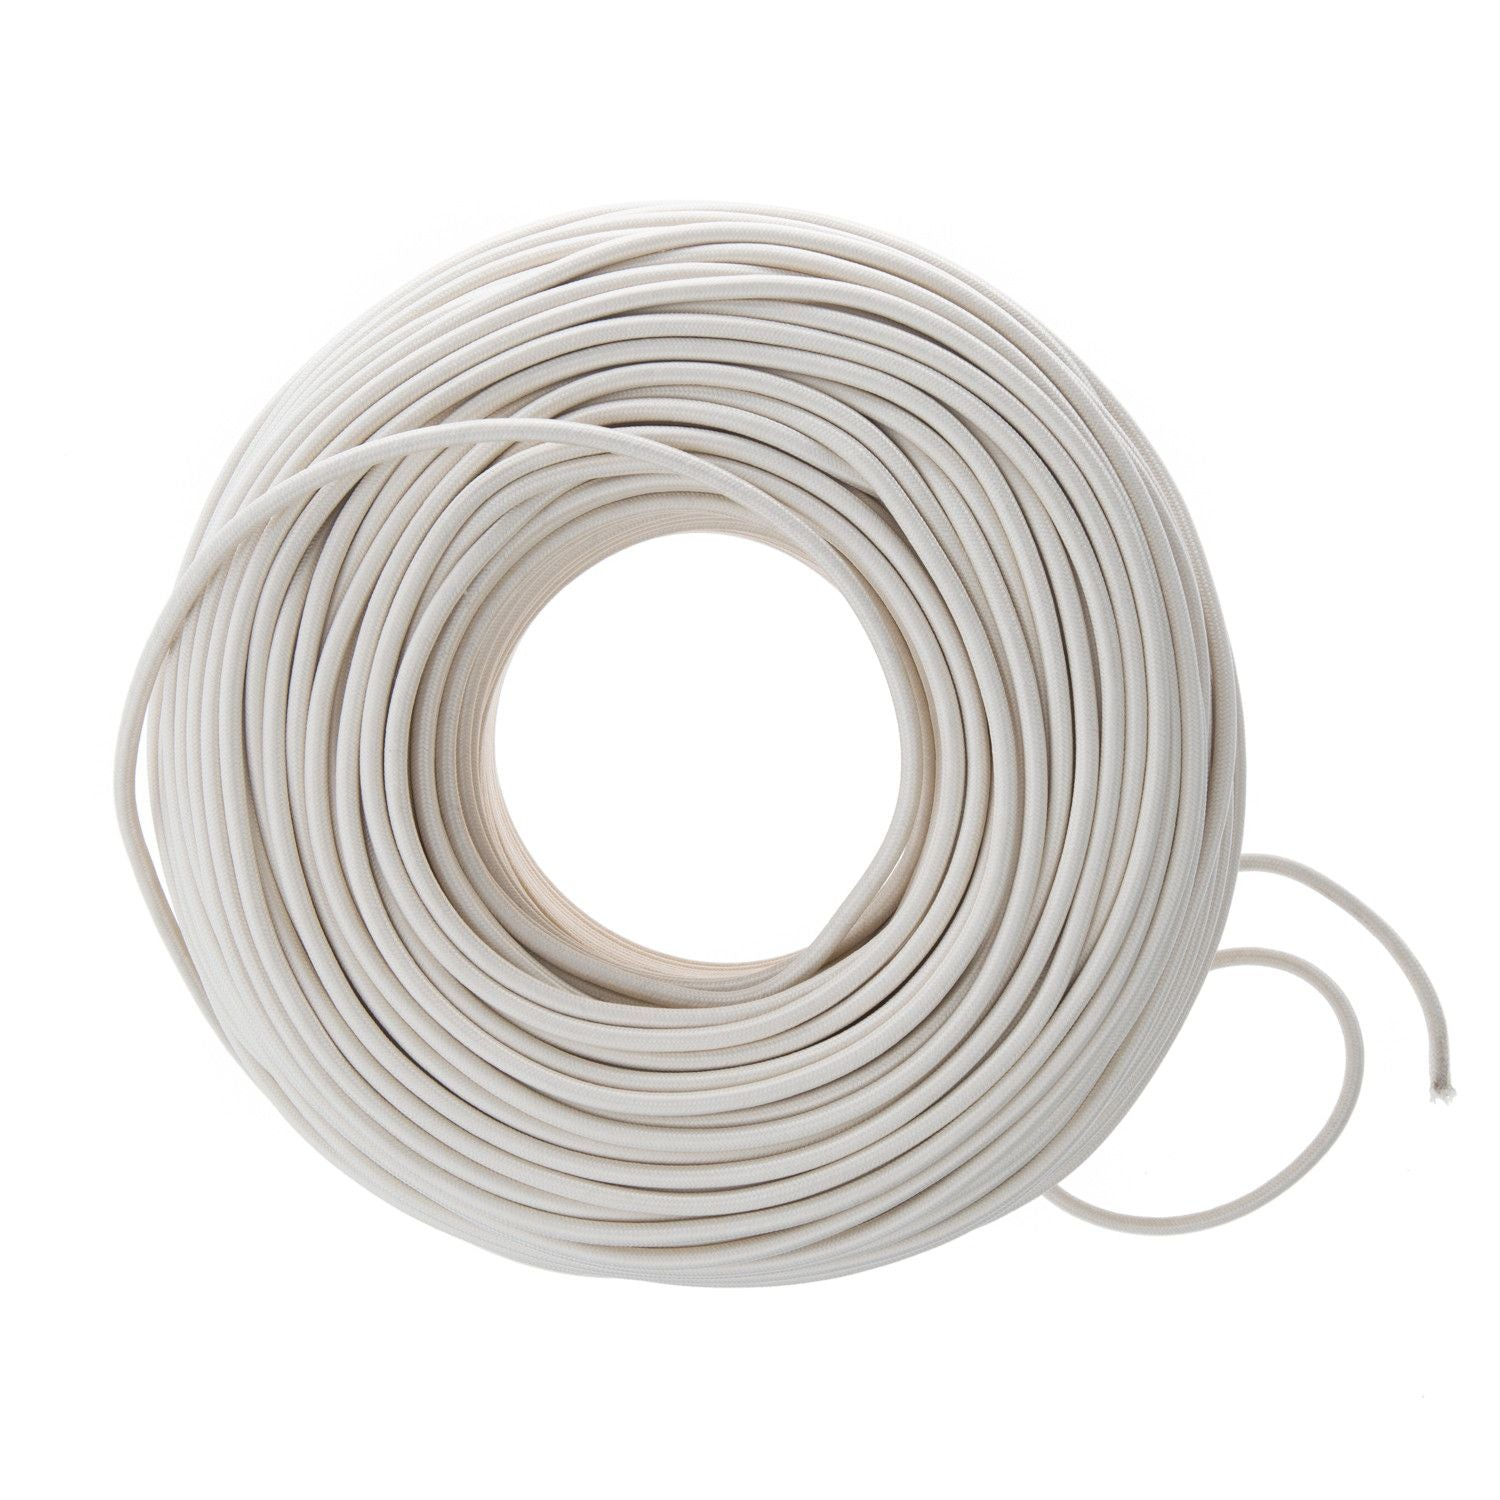 So Cord Listed 3 4 5 Conductor So Sow Cable Flexible Cored: Cloth Covered Wire - Ivory